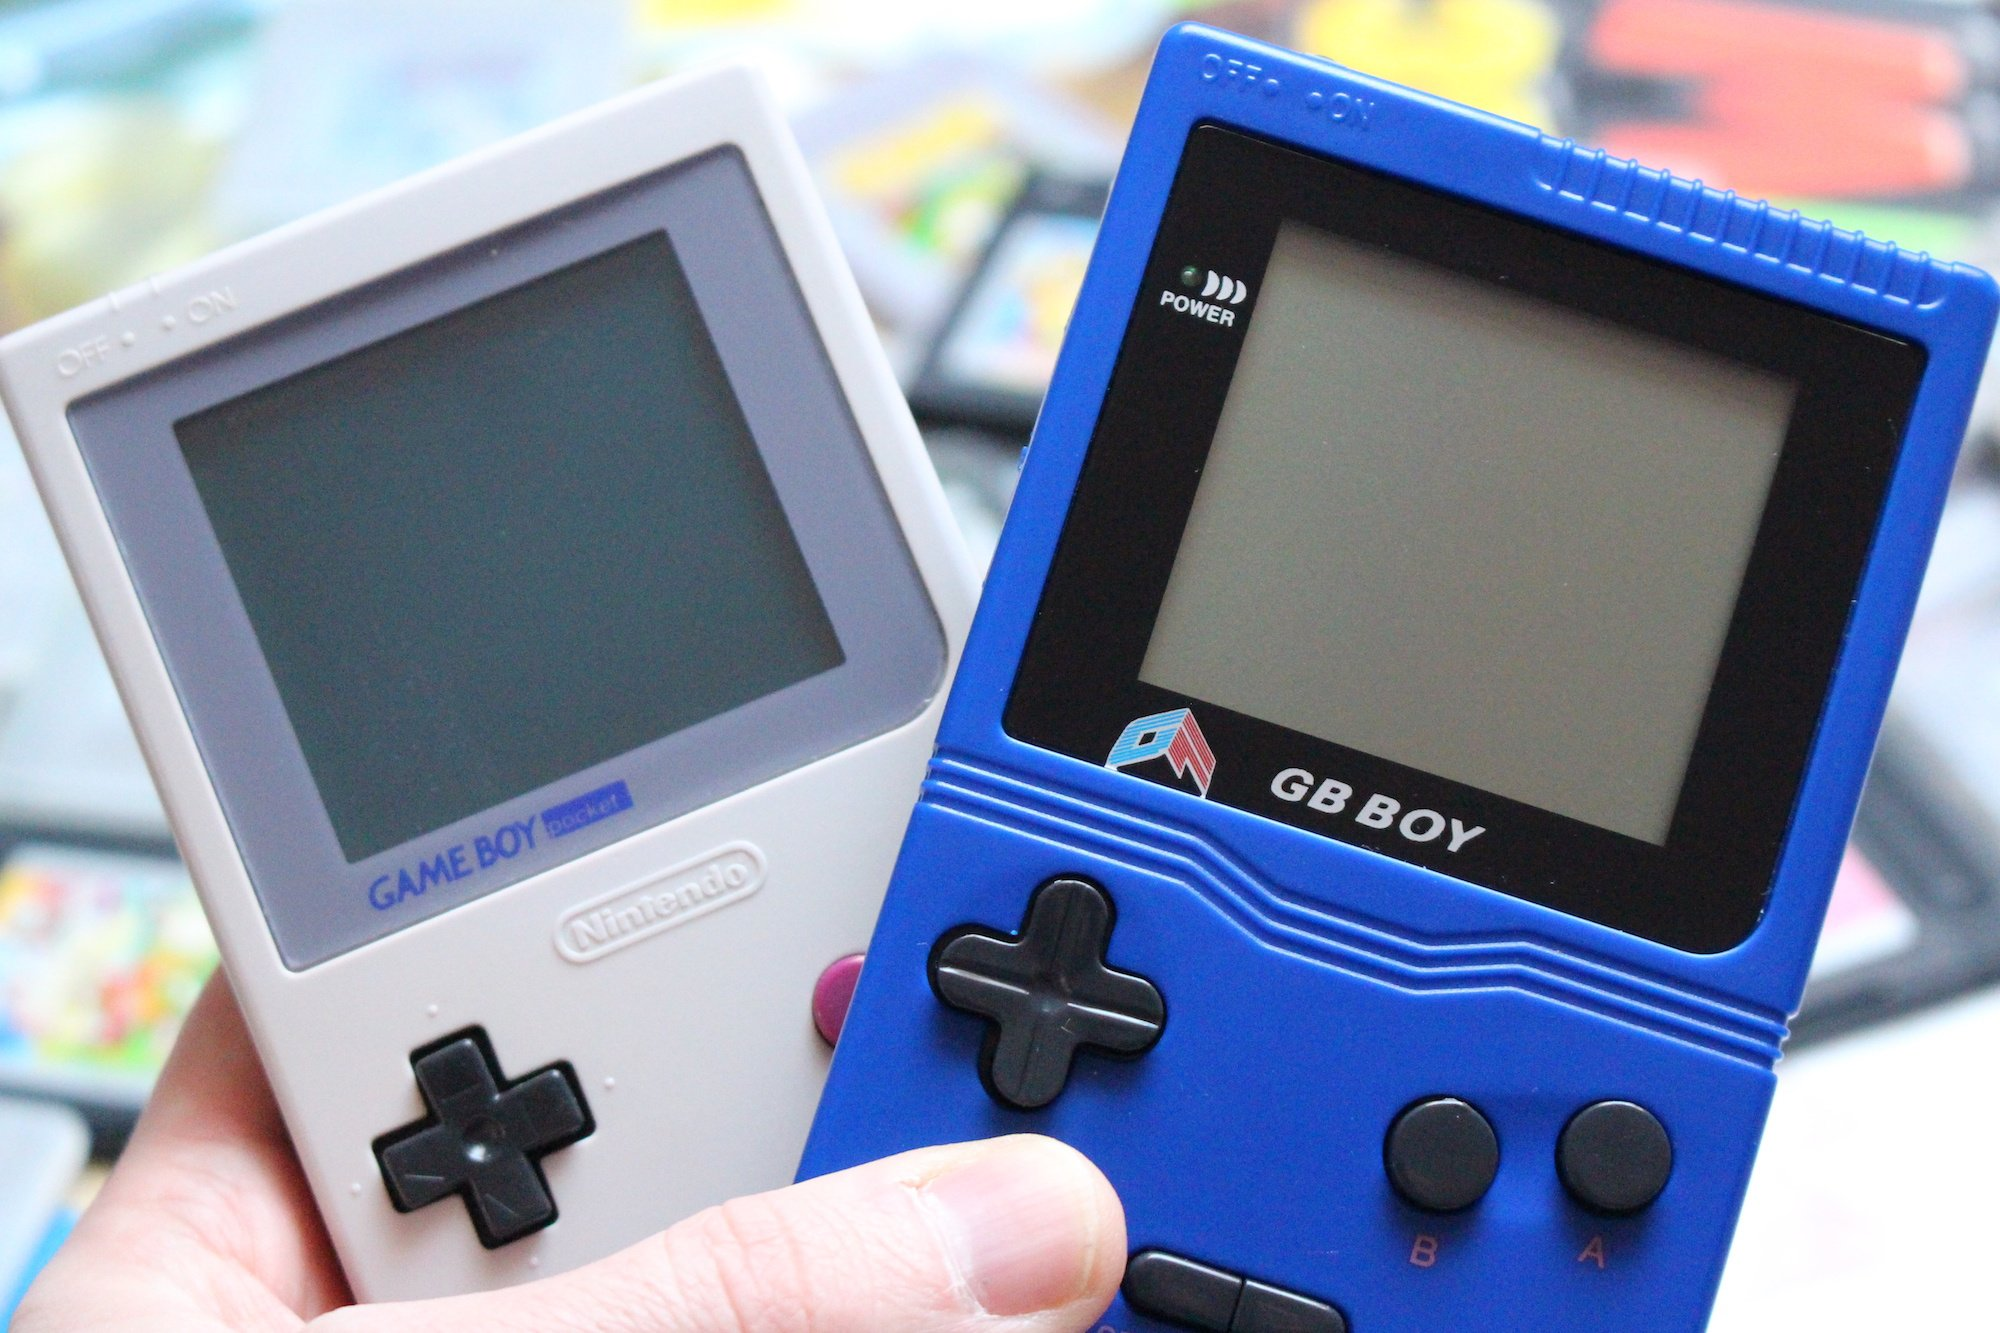 Game for colors - The Gb Boy Classic Has A Monochrome Lcd Screen Which Is Quite Blurry Perhaps Even More So Than The Original Game Boy Pocket And The Sound Appears To Be